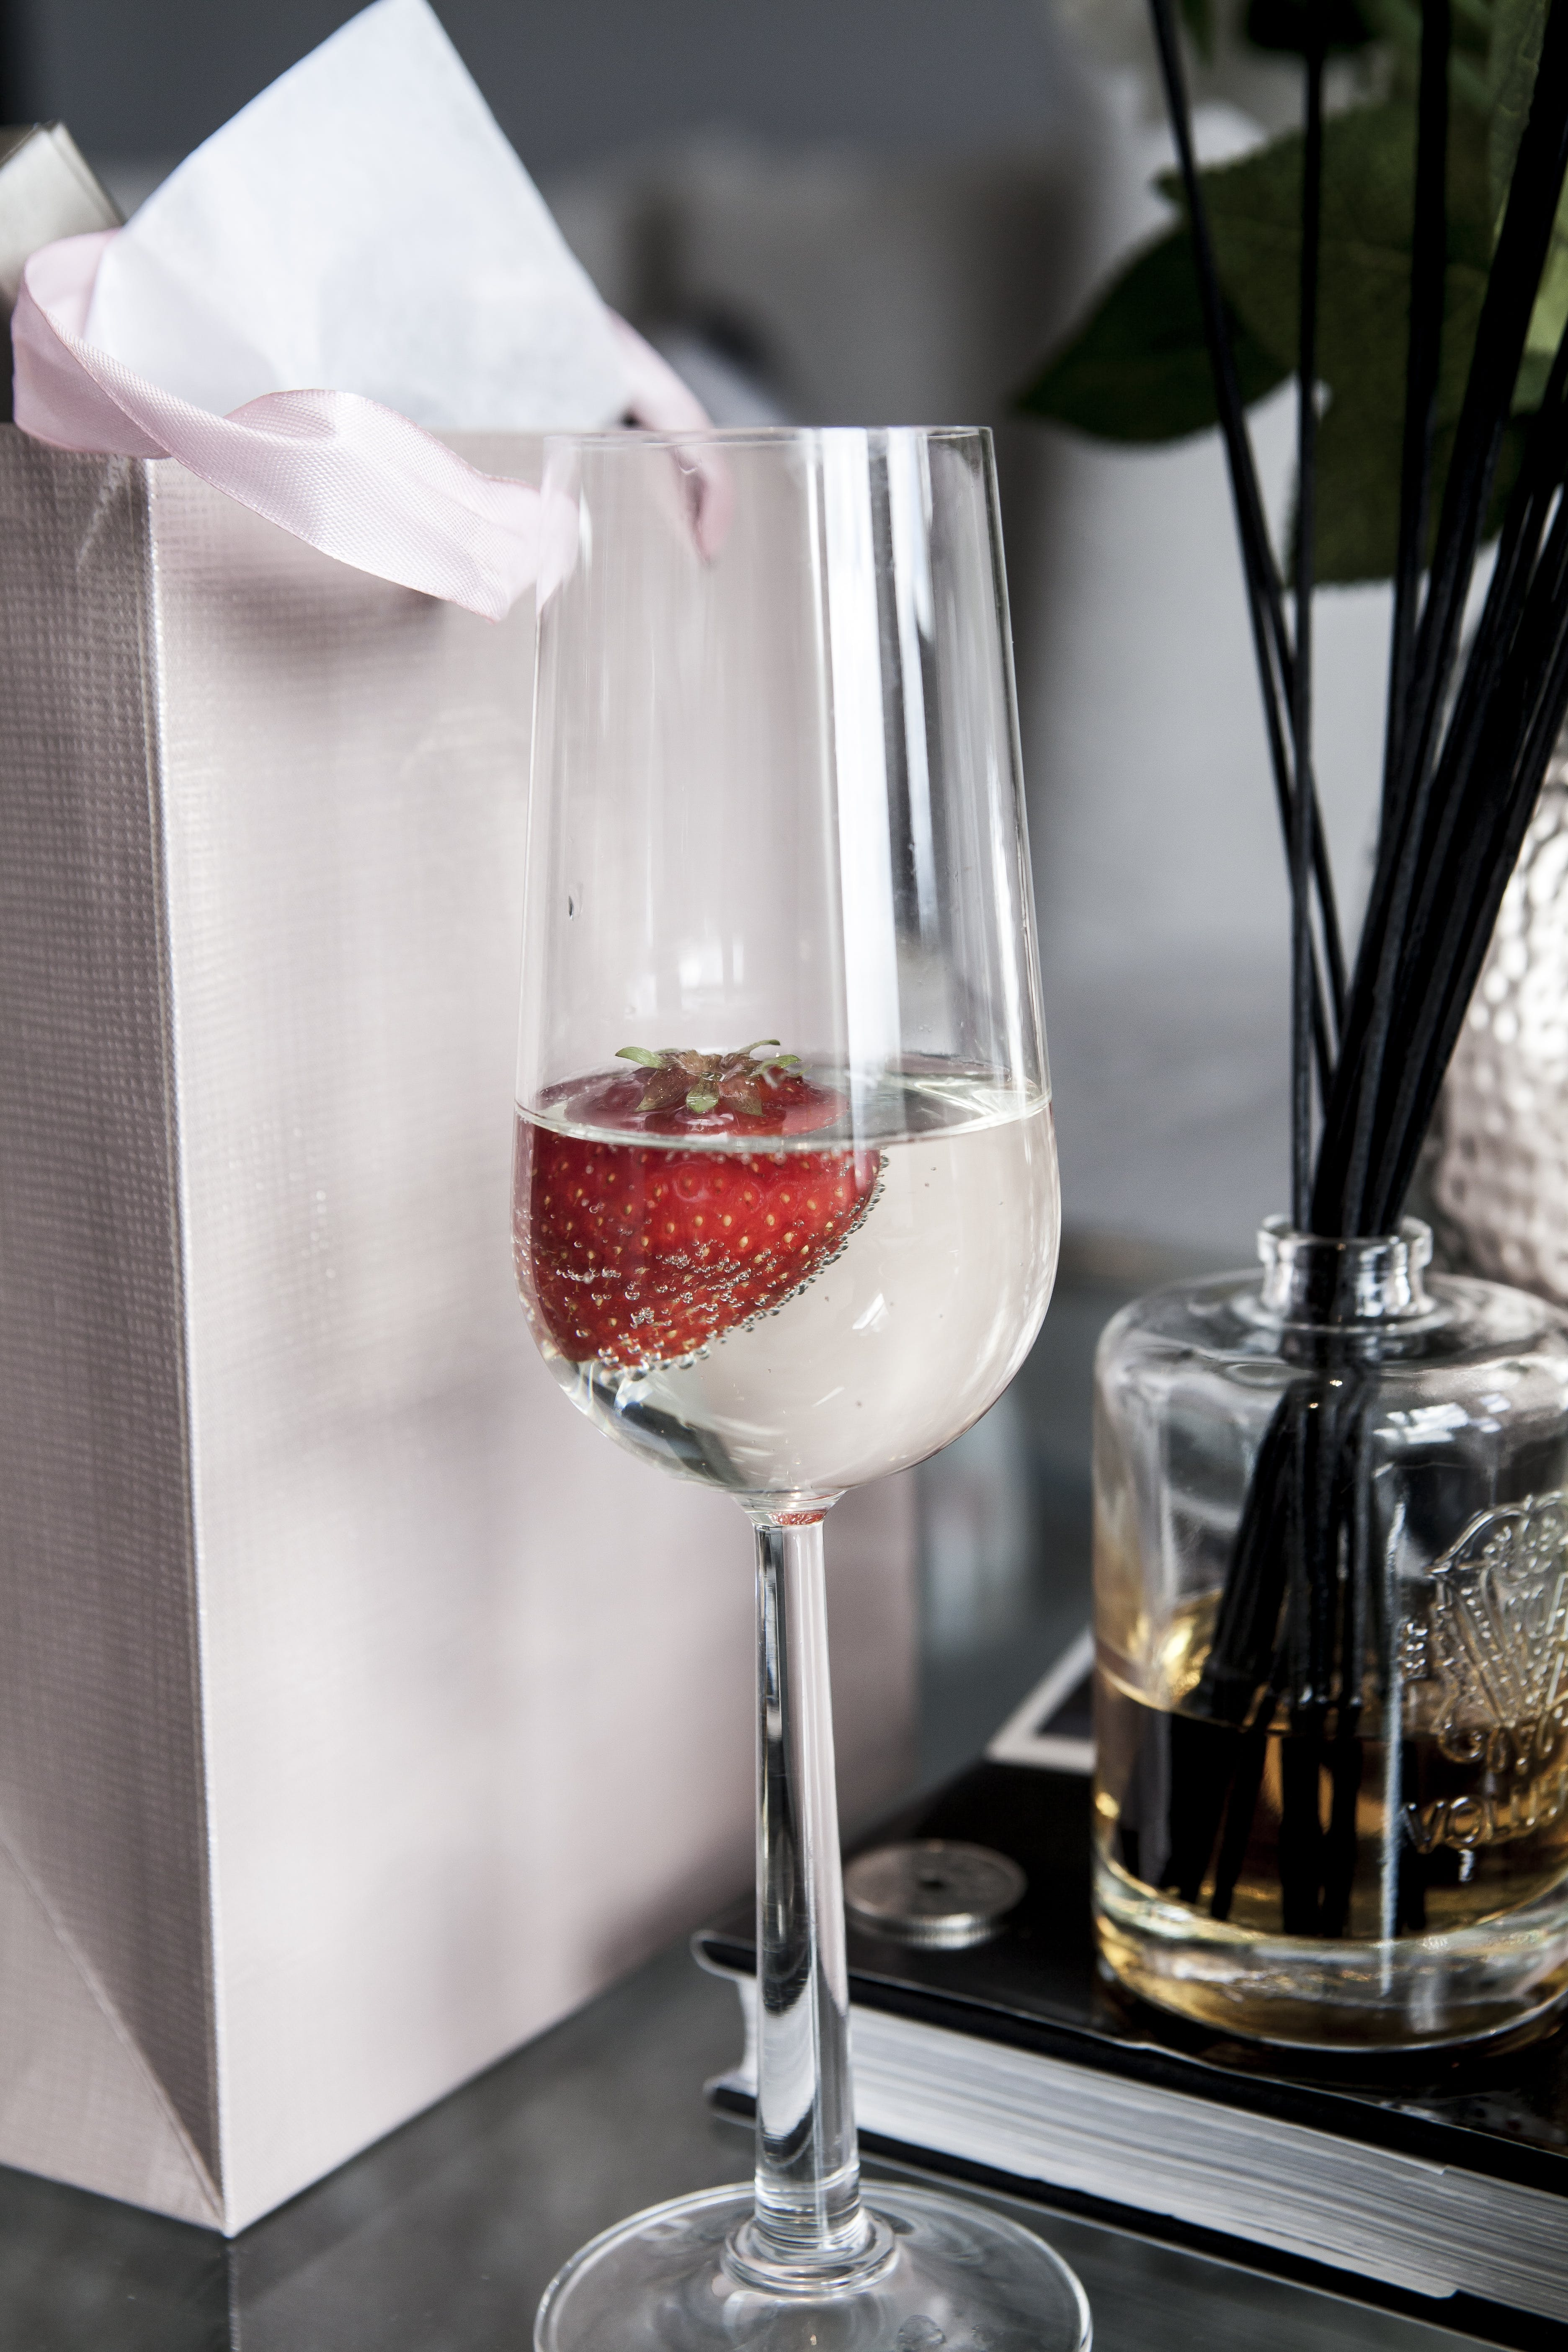 Clear Wine Glass With Strawberry in Glass